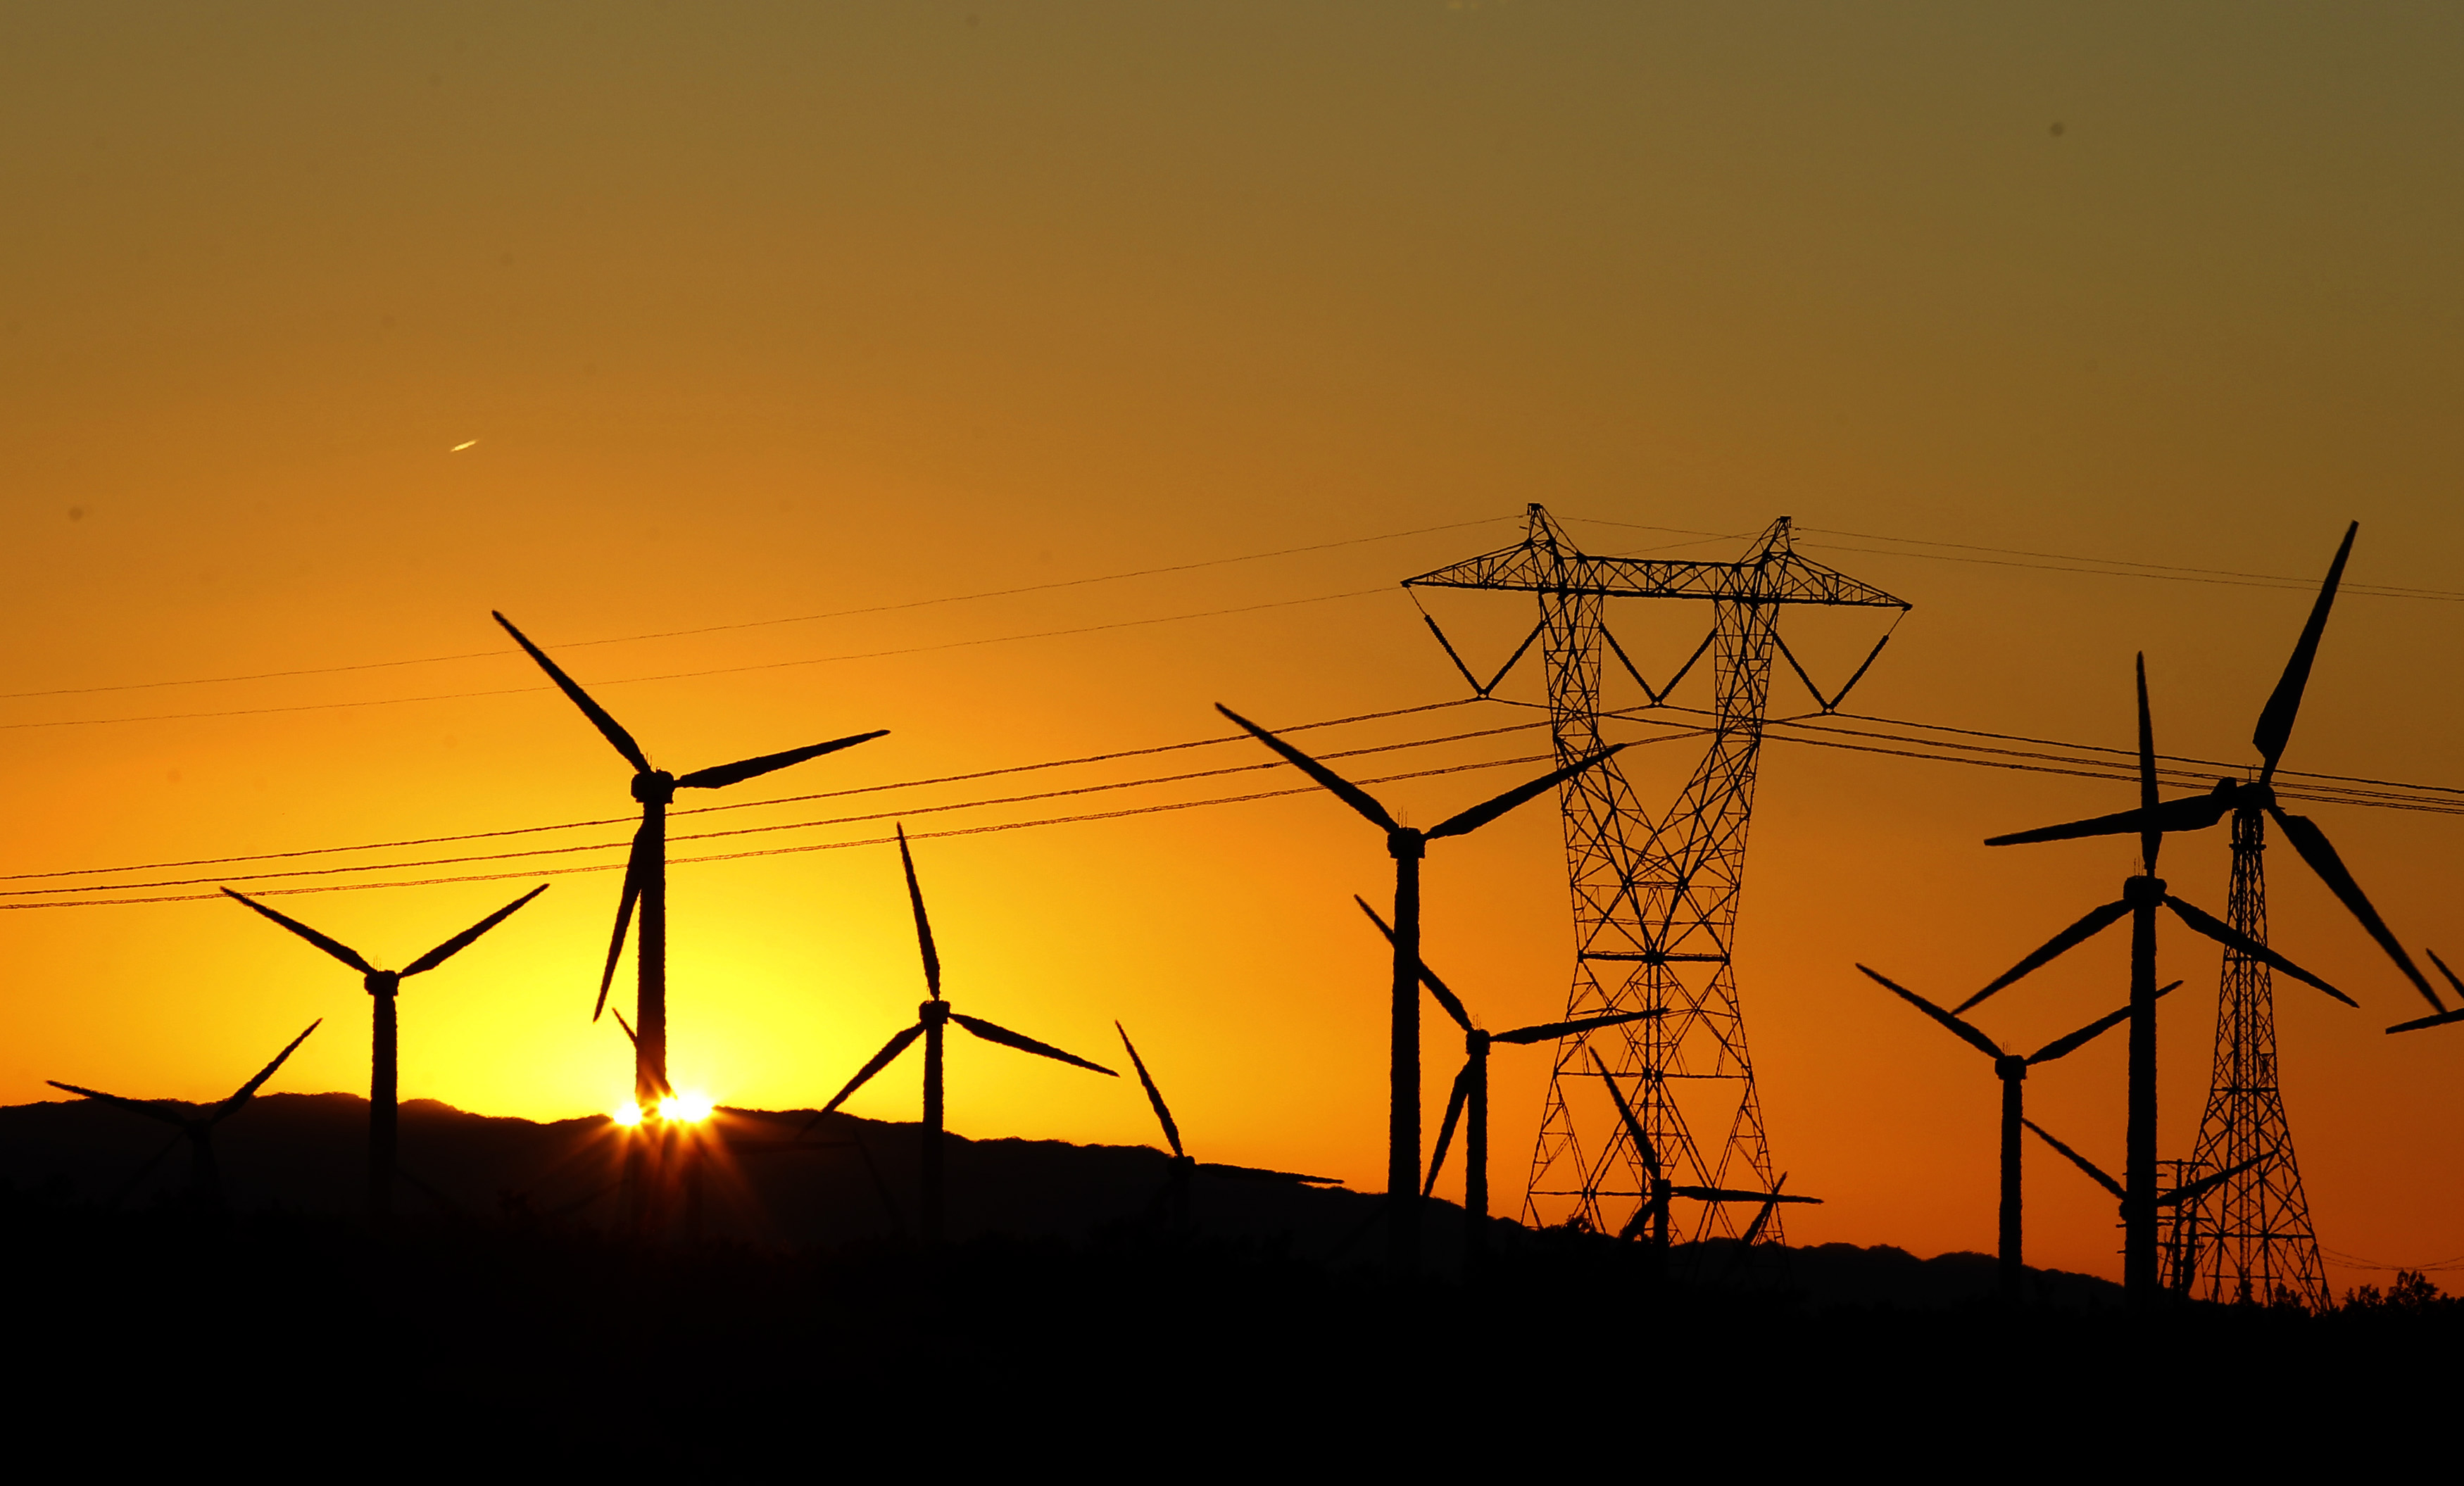 The sun rises behind windmills at a wind farm in Palm Springs, California, February 9, 2011.